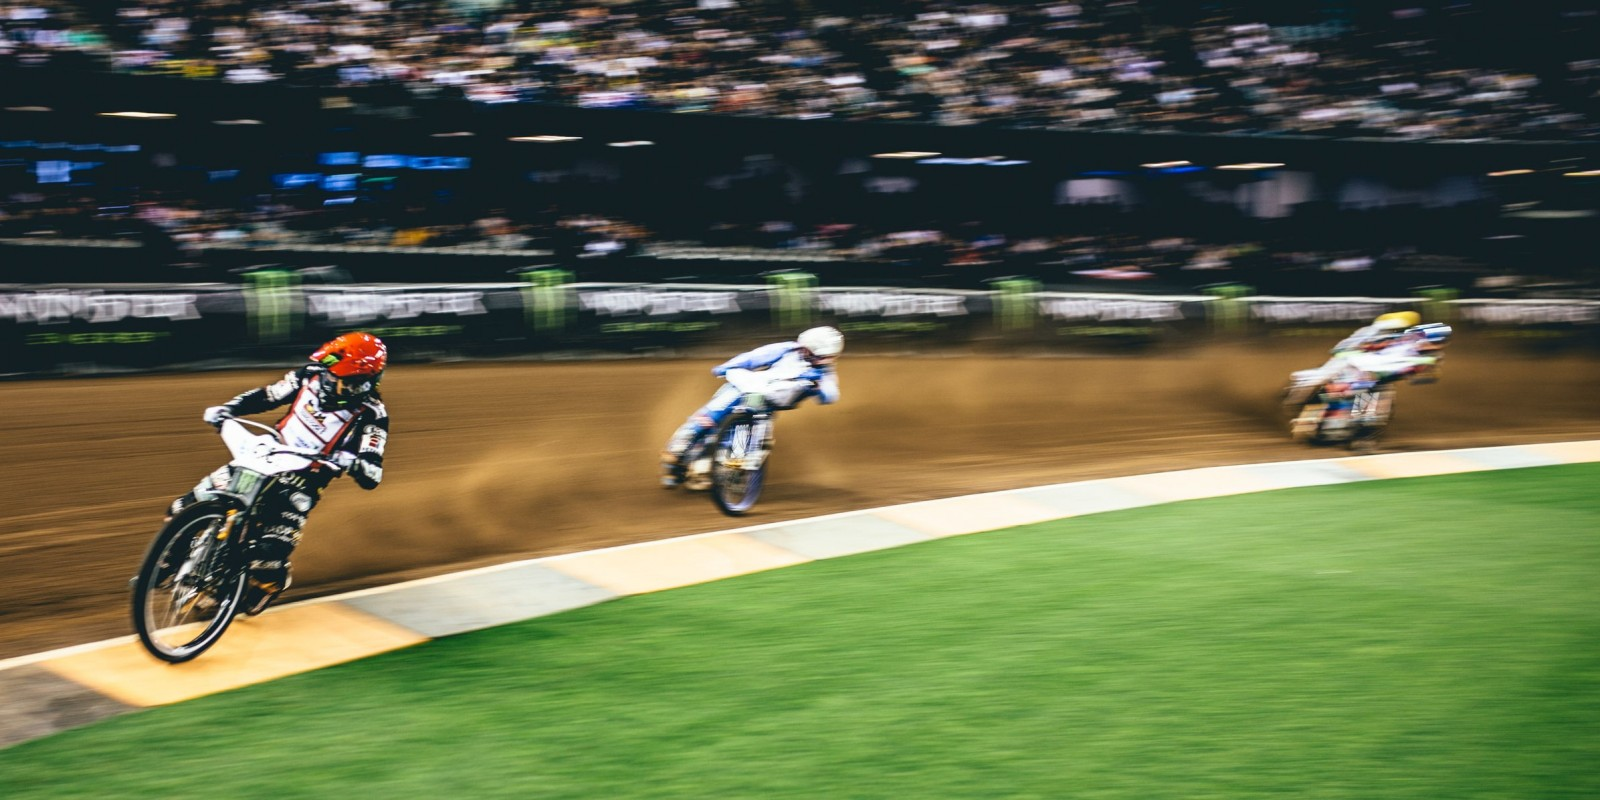 Images fro the final round of the 2017 Speedway GP season from Melbourne, Australia